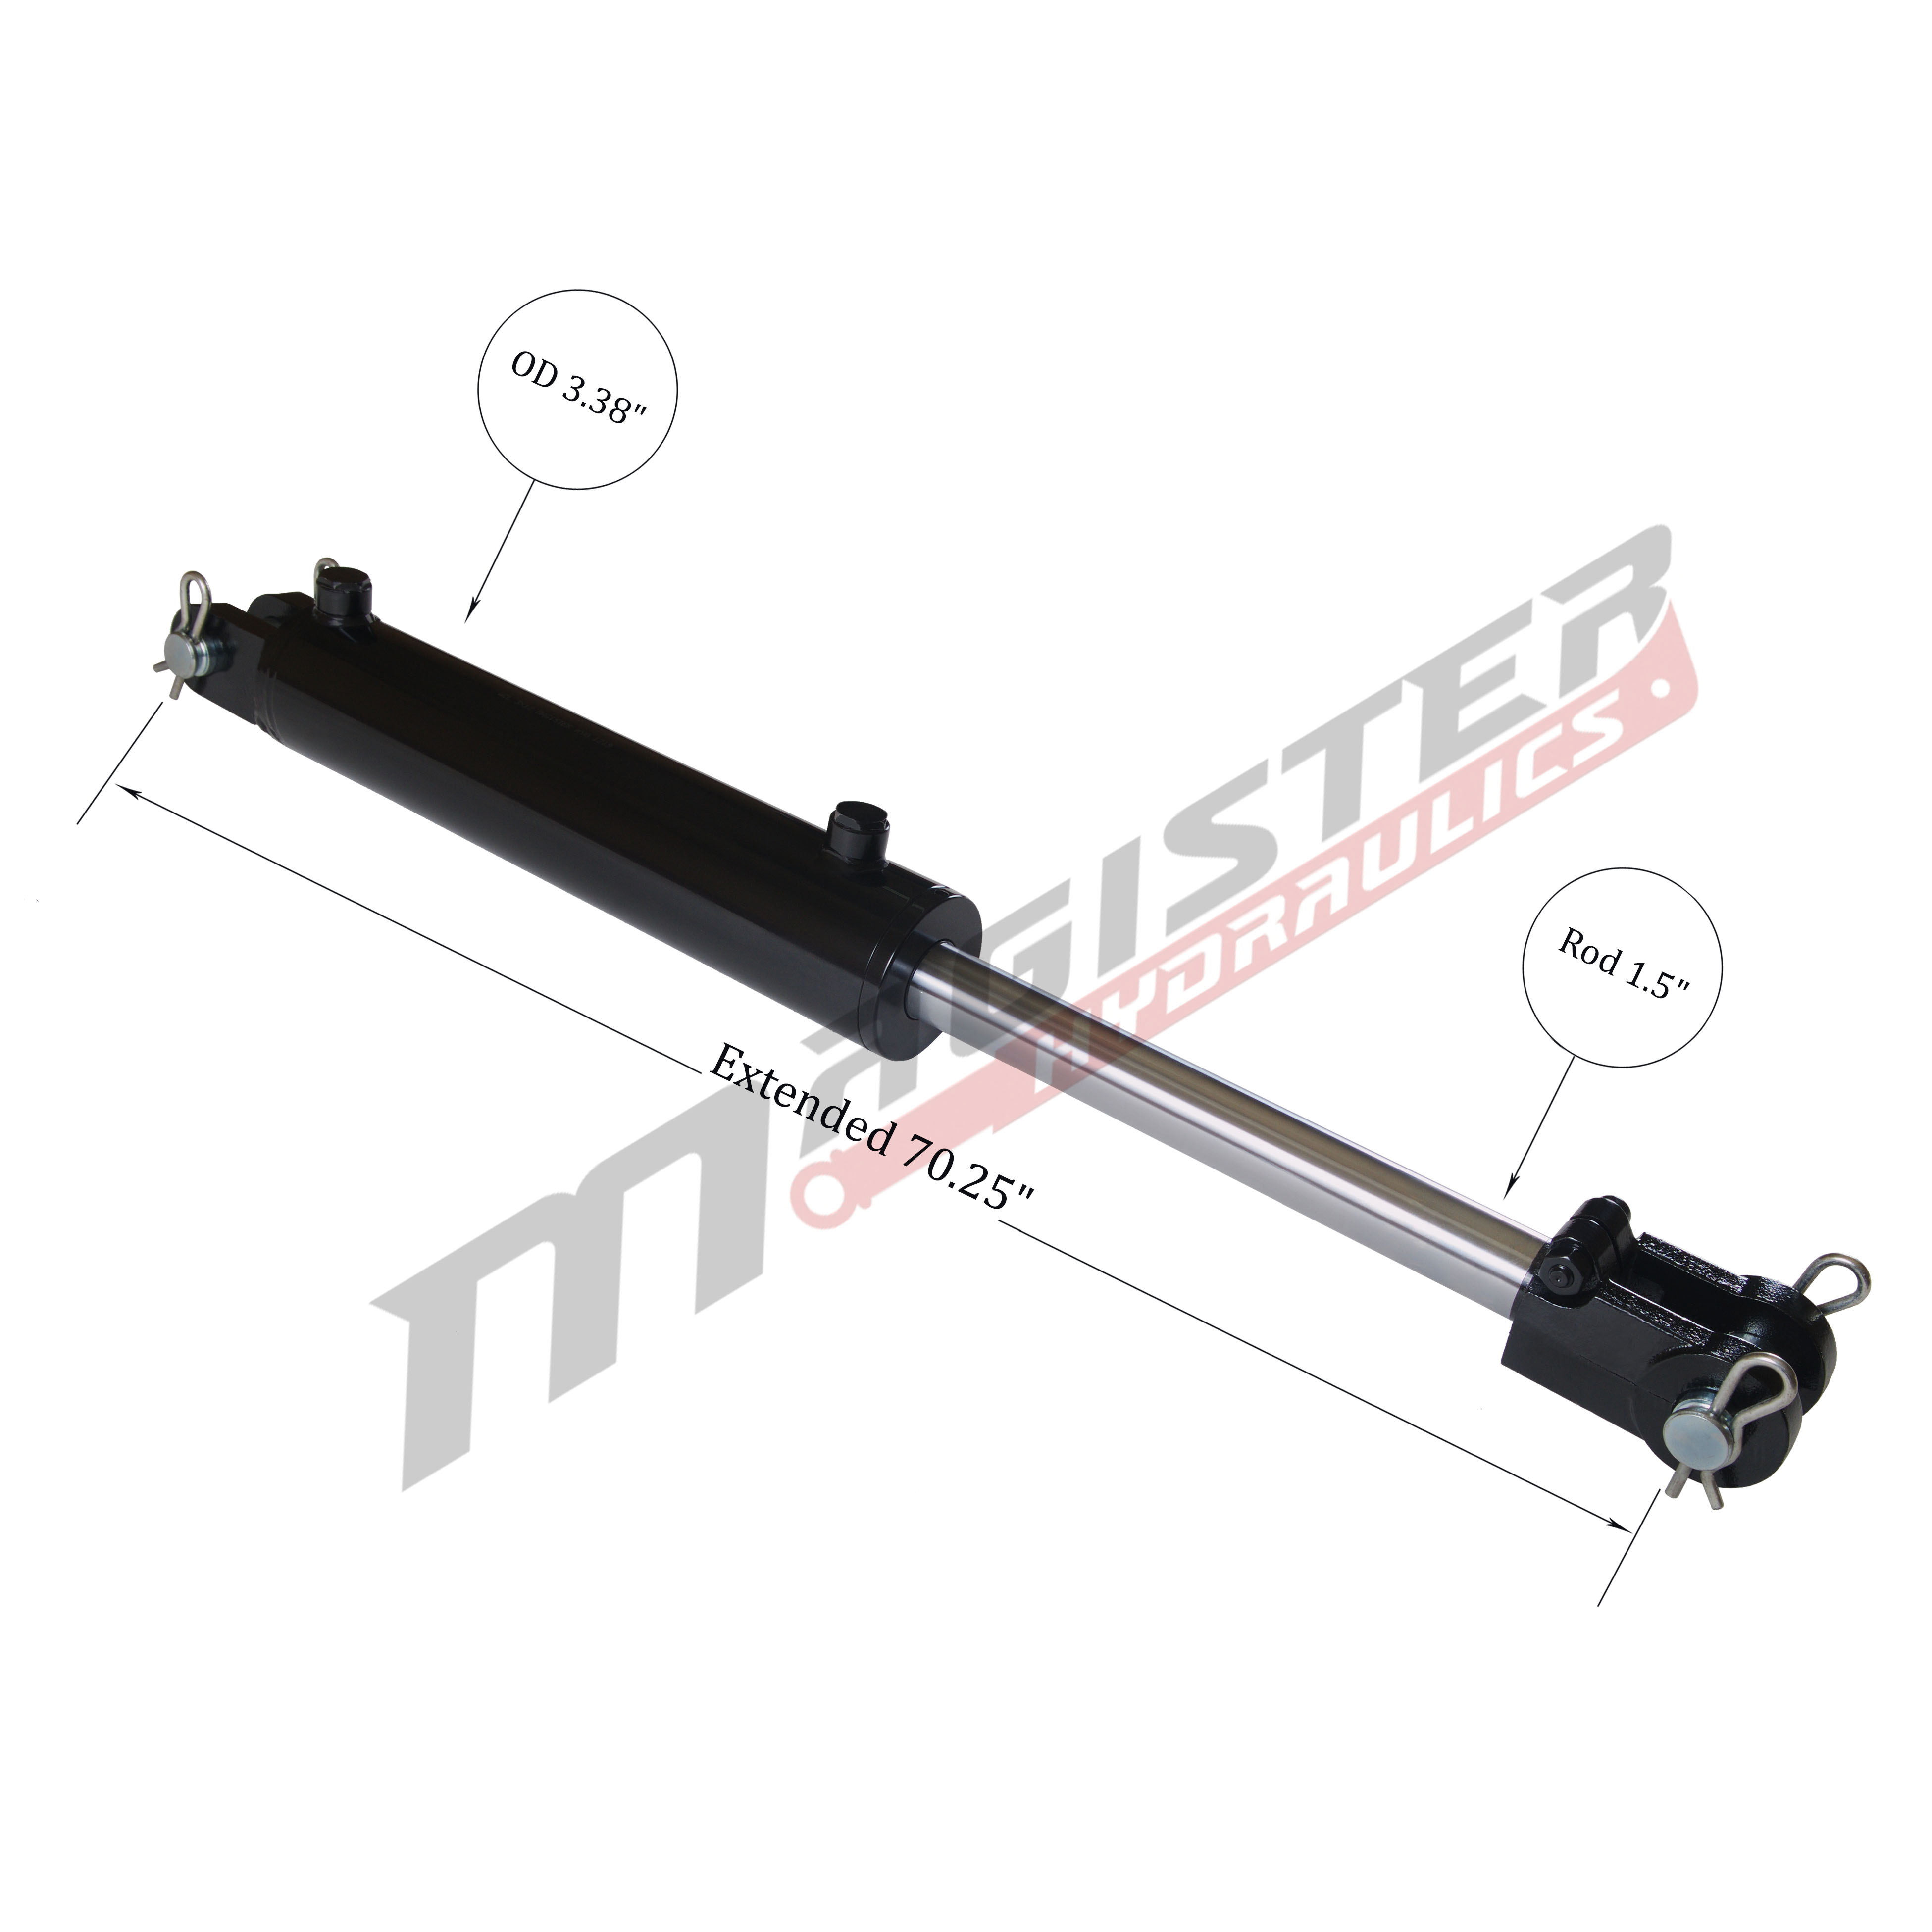 3 bore x 30 stroke hydraulic cylinder, welded clevis double acting cylinder | Magister Hydraulics